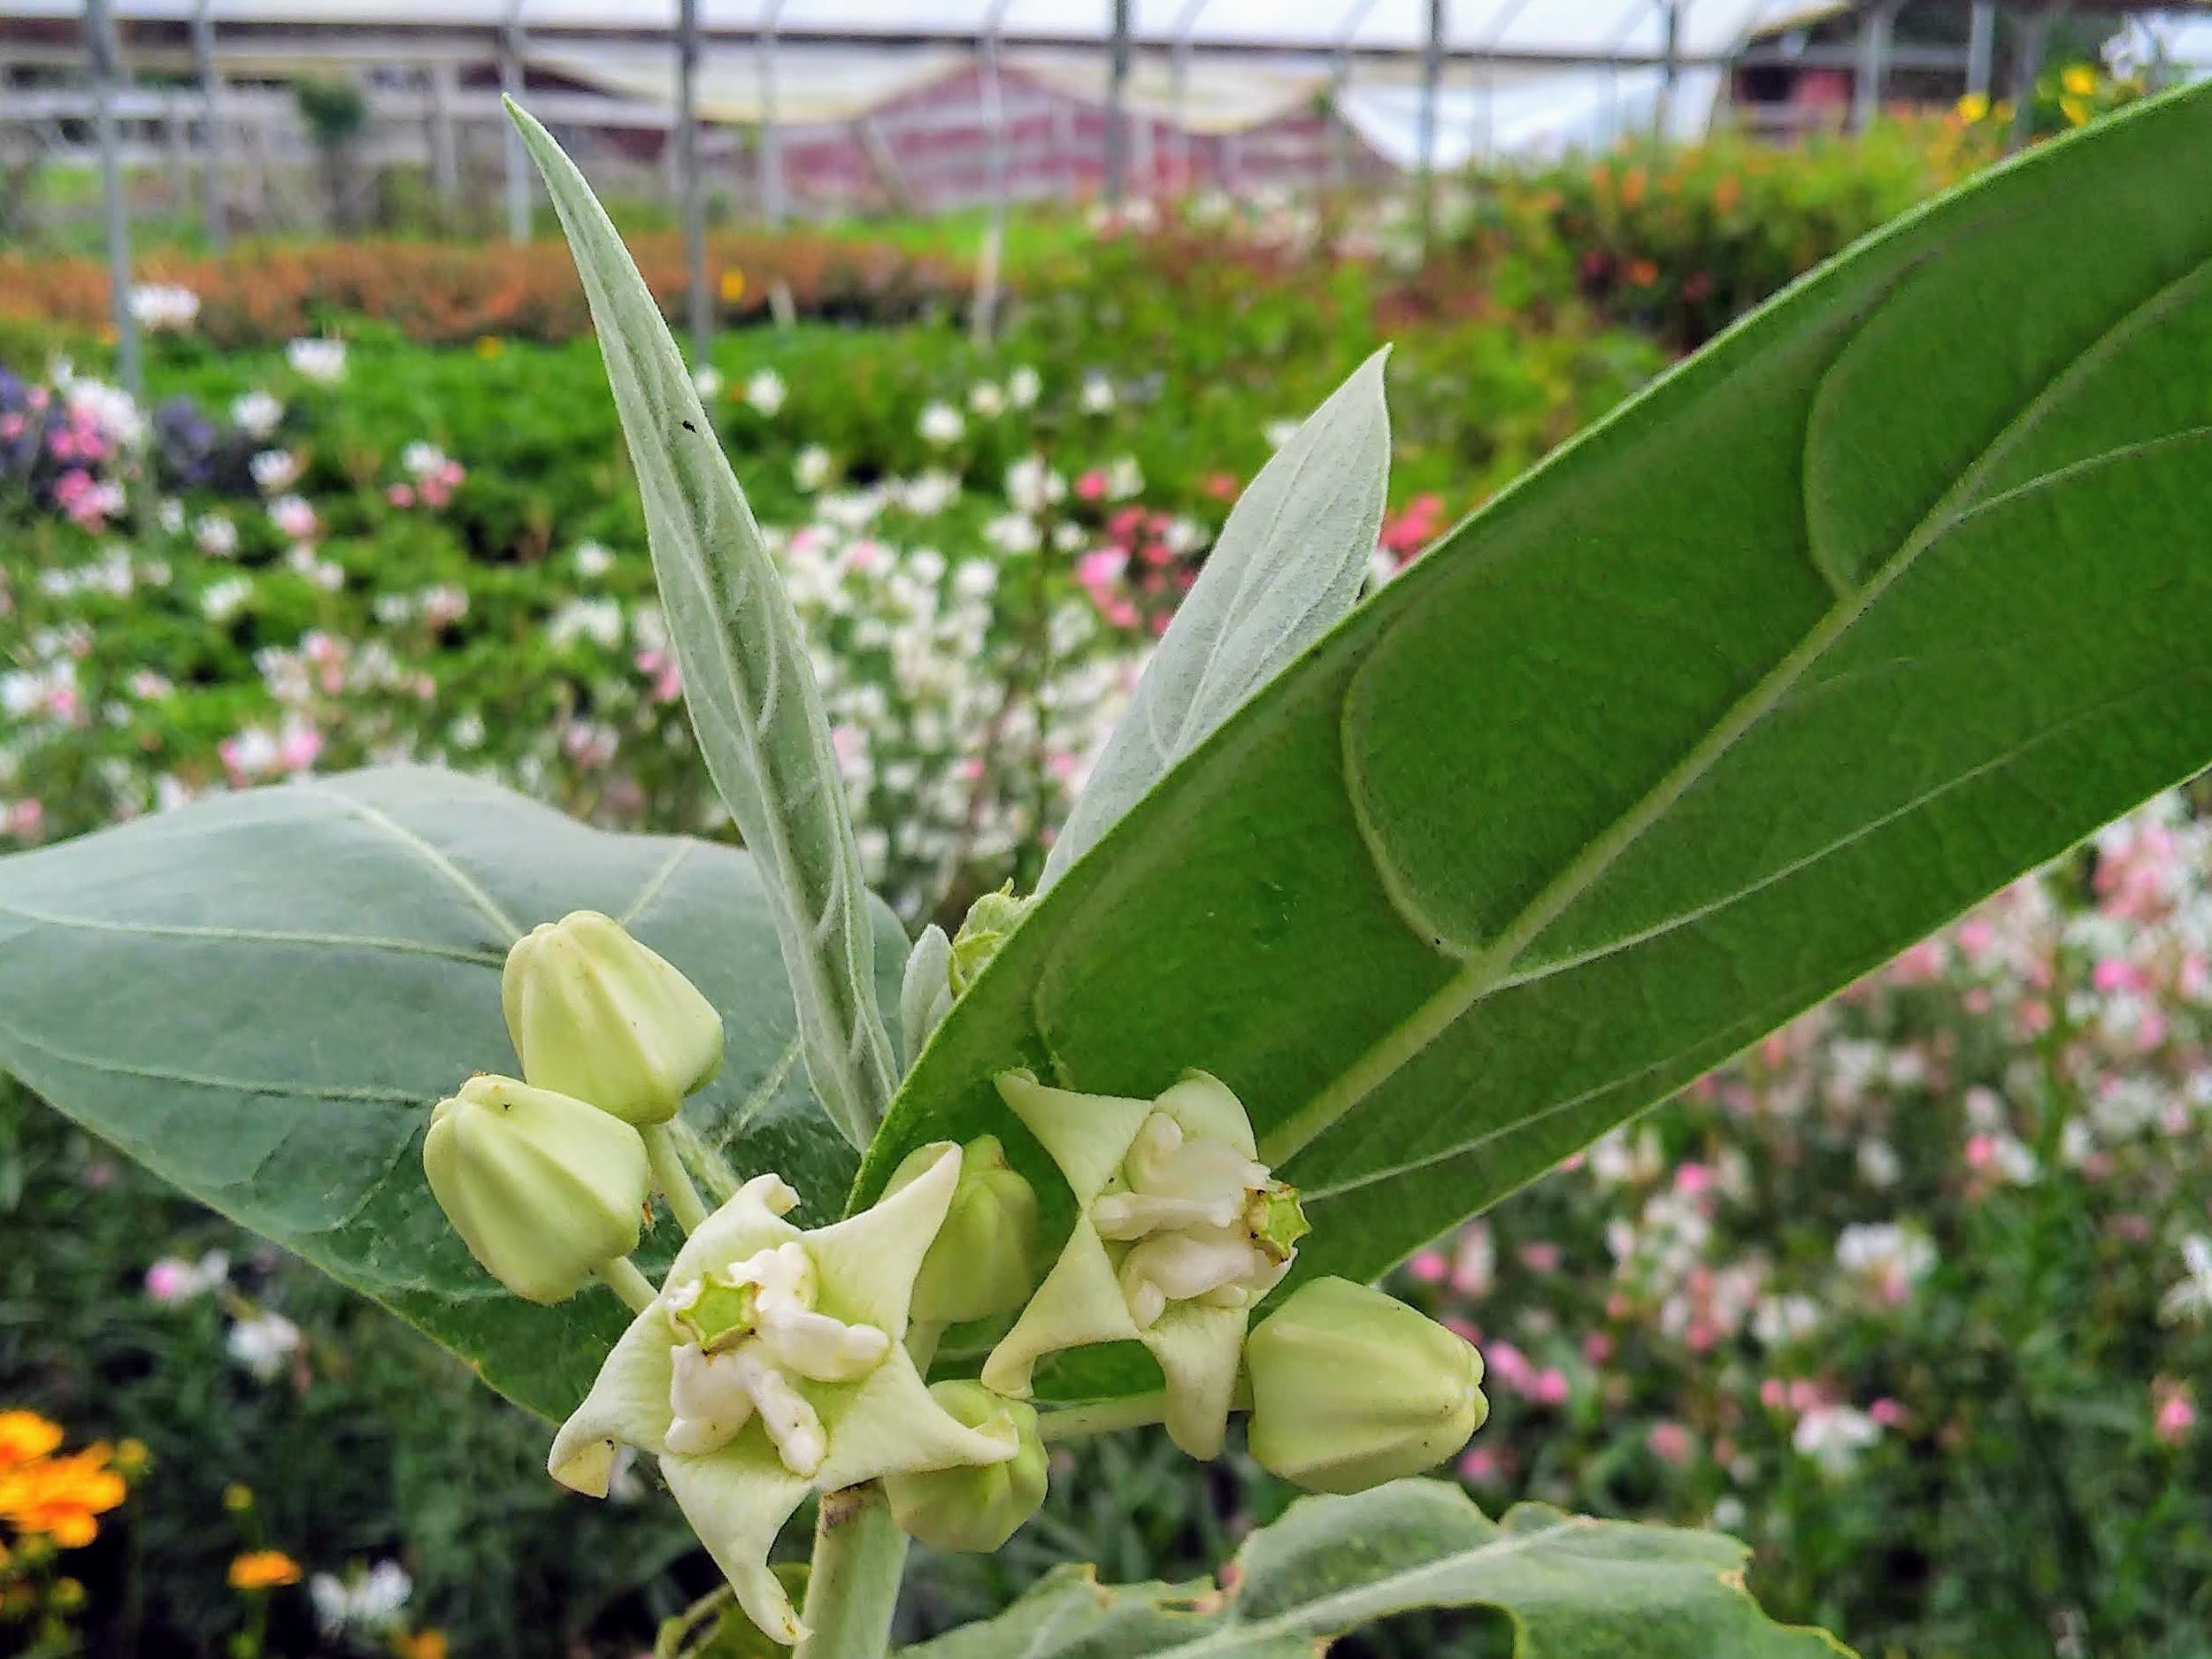 Giant Milkweed - Sun Exposure: FullSoil Moisture: Medium, drought tolerantHeight: 8–15 feetBloom Time/Color: Primarily Summer, but throughout the year/White